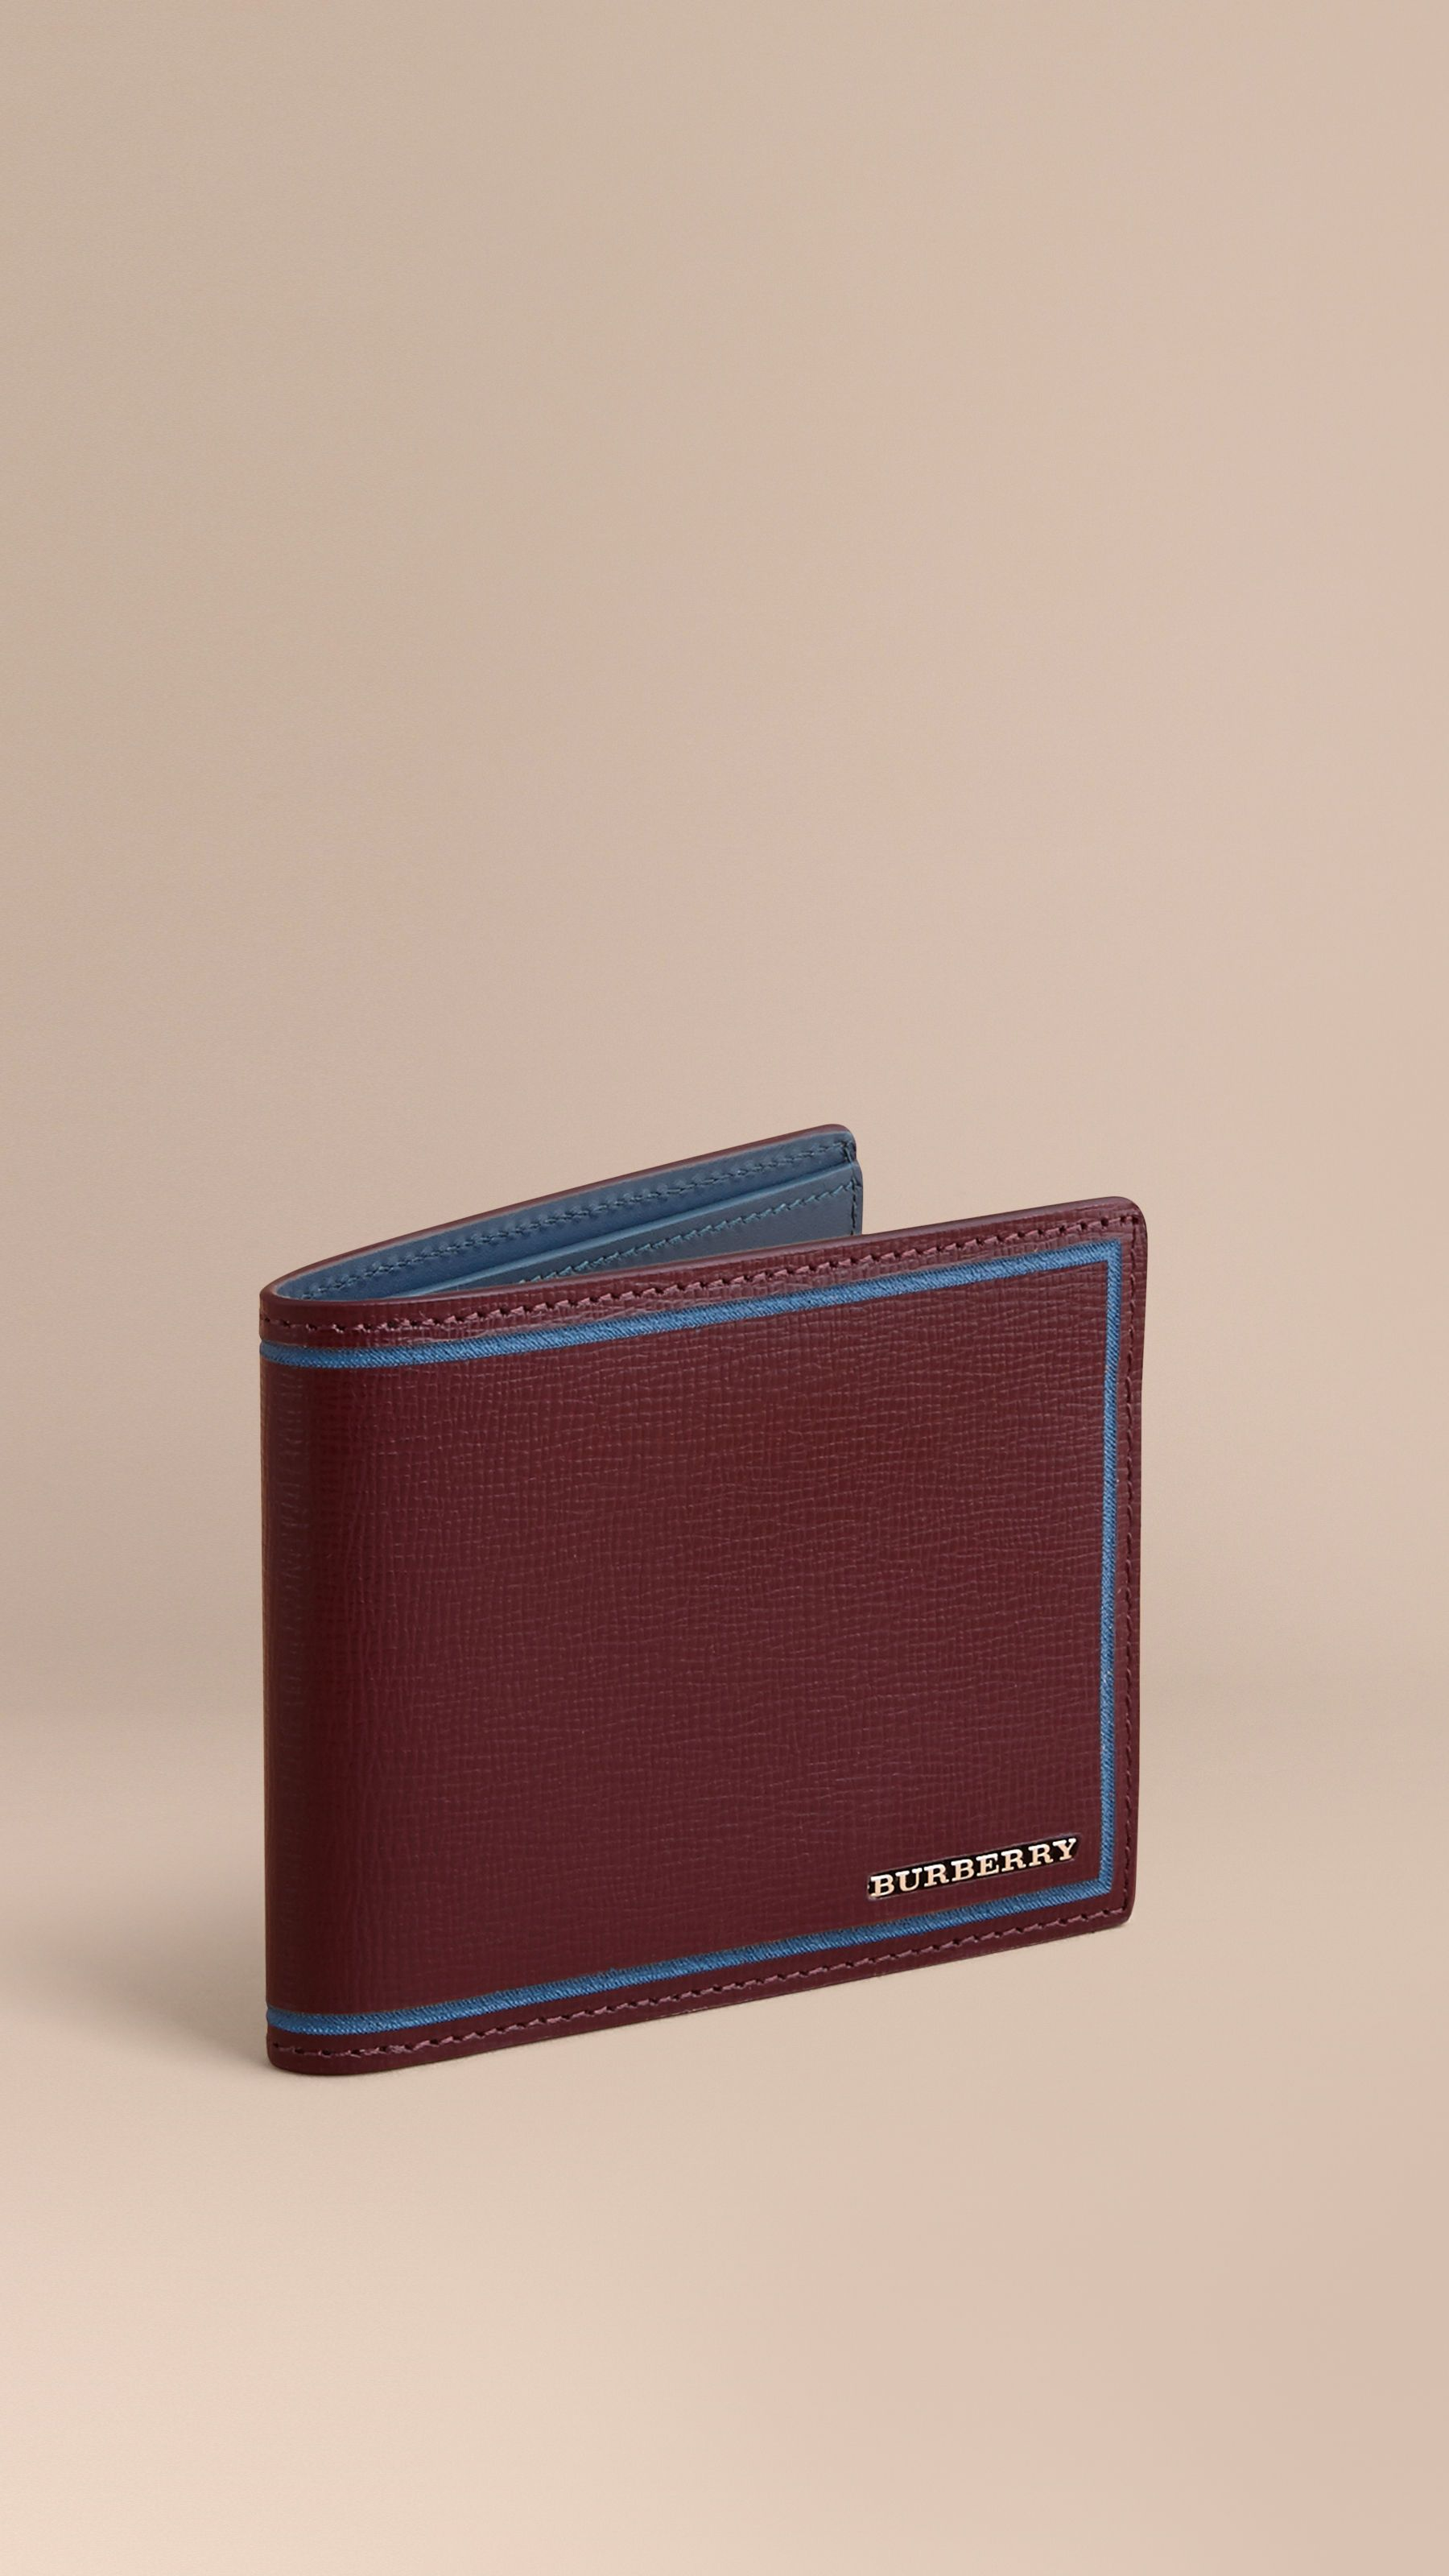 2c7444b3d121 Men's Wallets | Burberry | Men's Leather wallets | Leather wallet ...